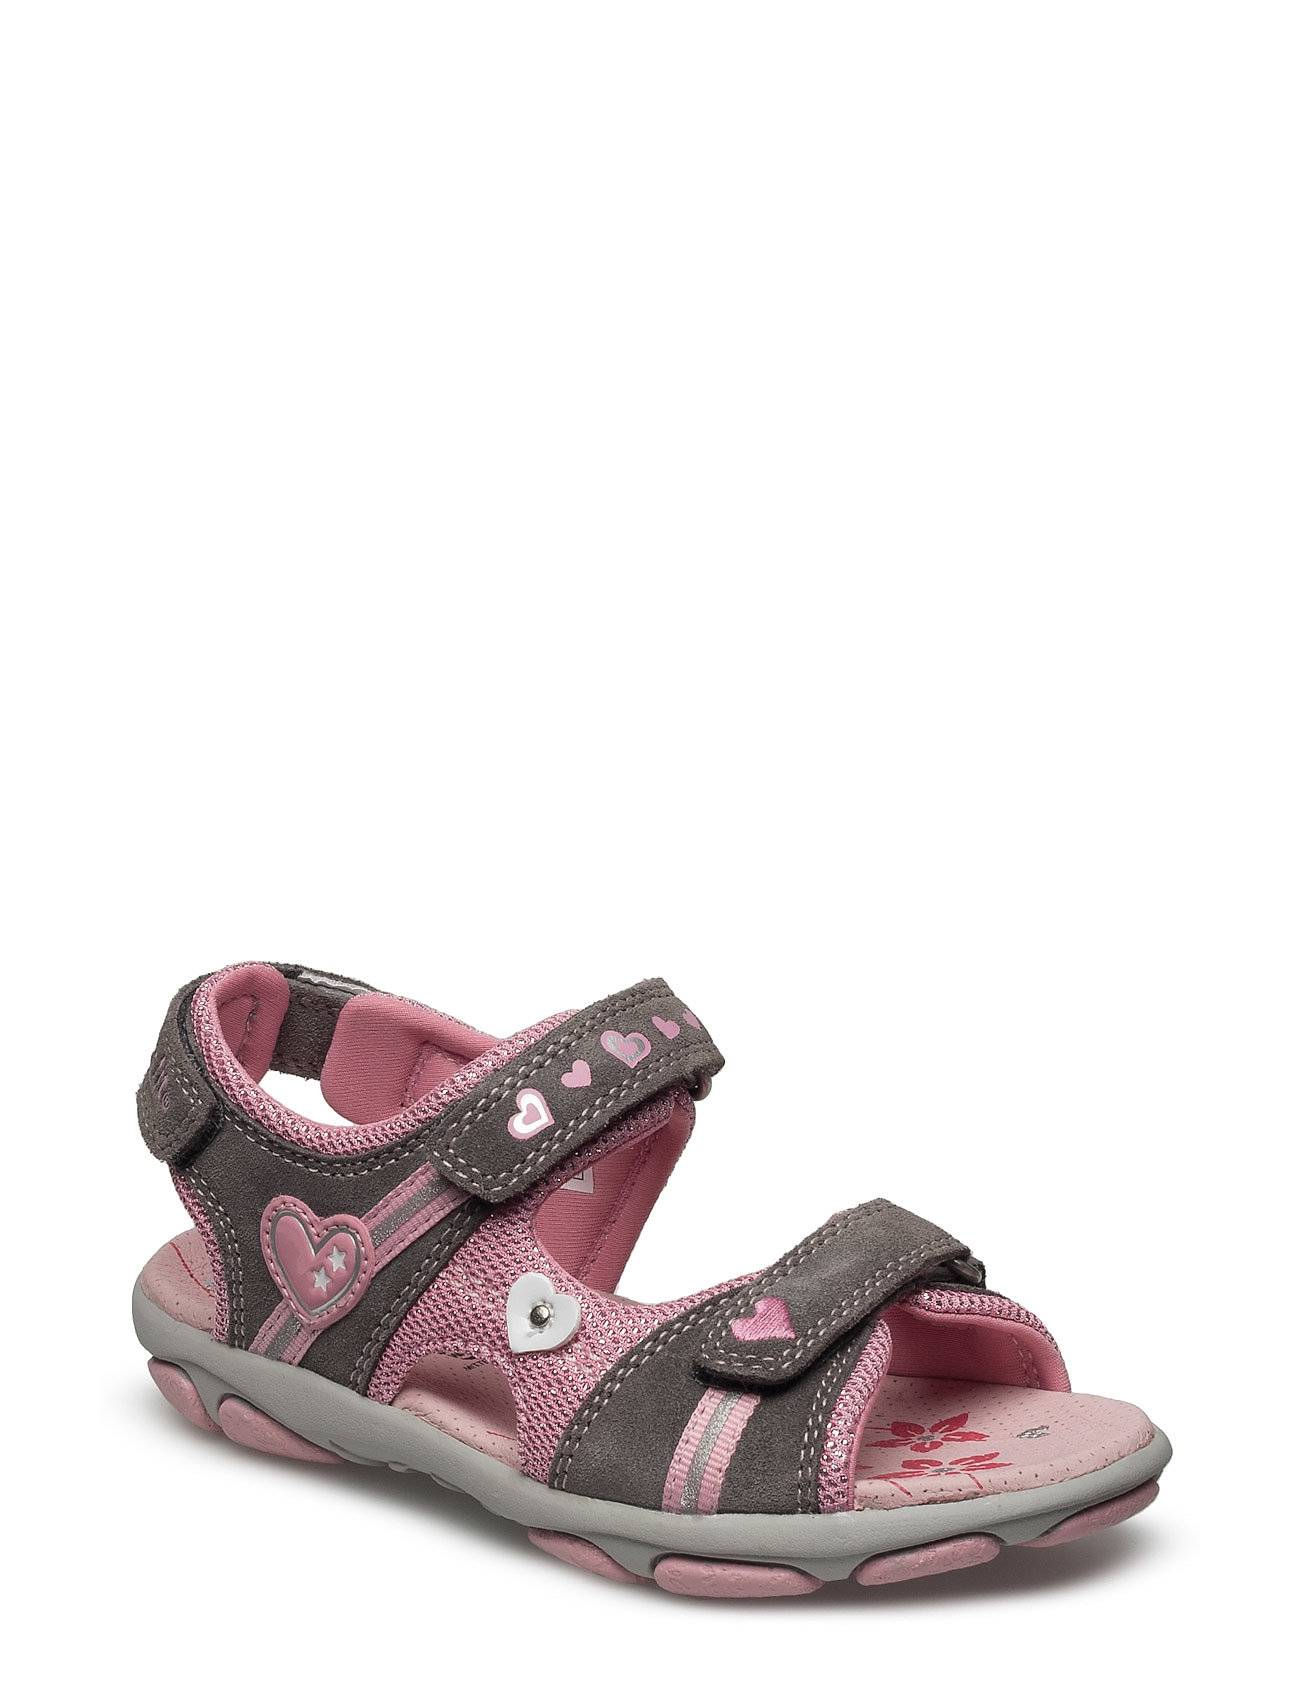 Superfit Nelly 1 Sandals